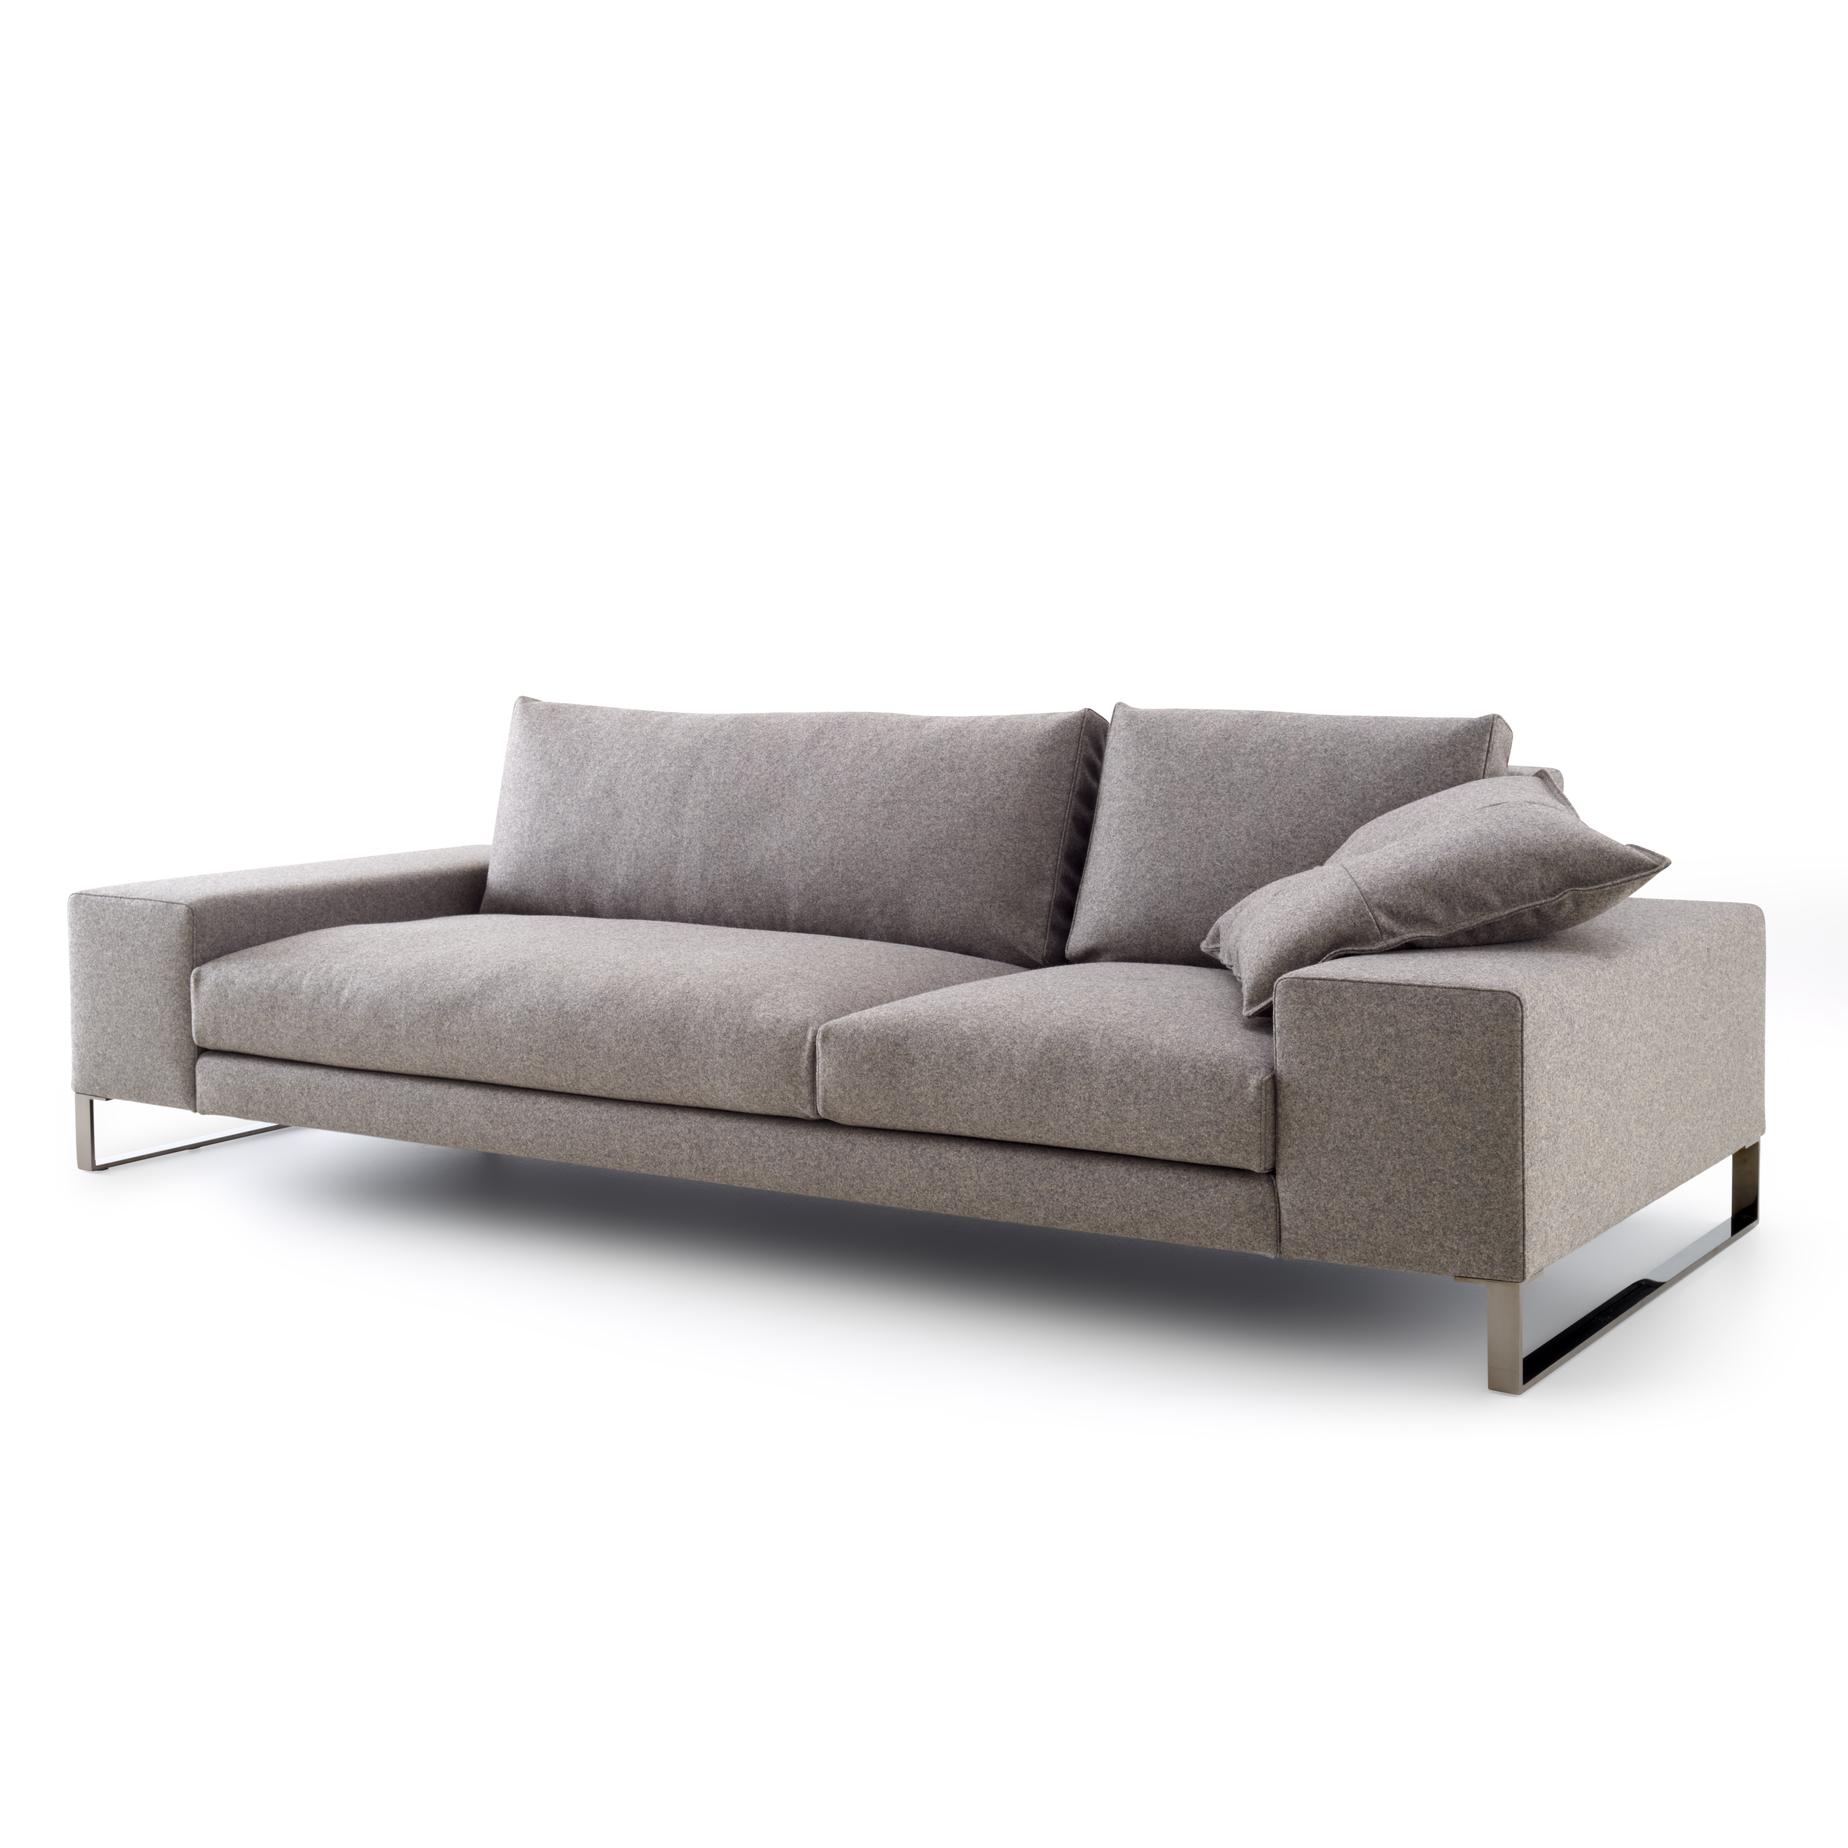 Exclusif 2 Sofas From Designer Didier Gomez Ligne Roset Official Site